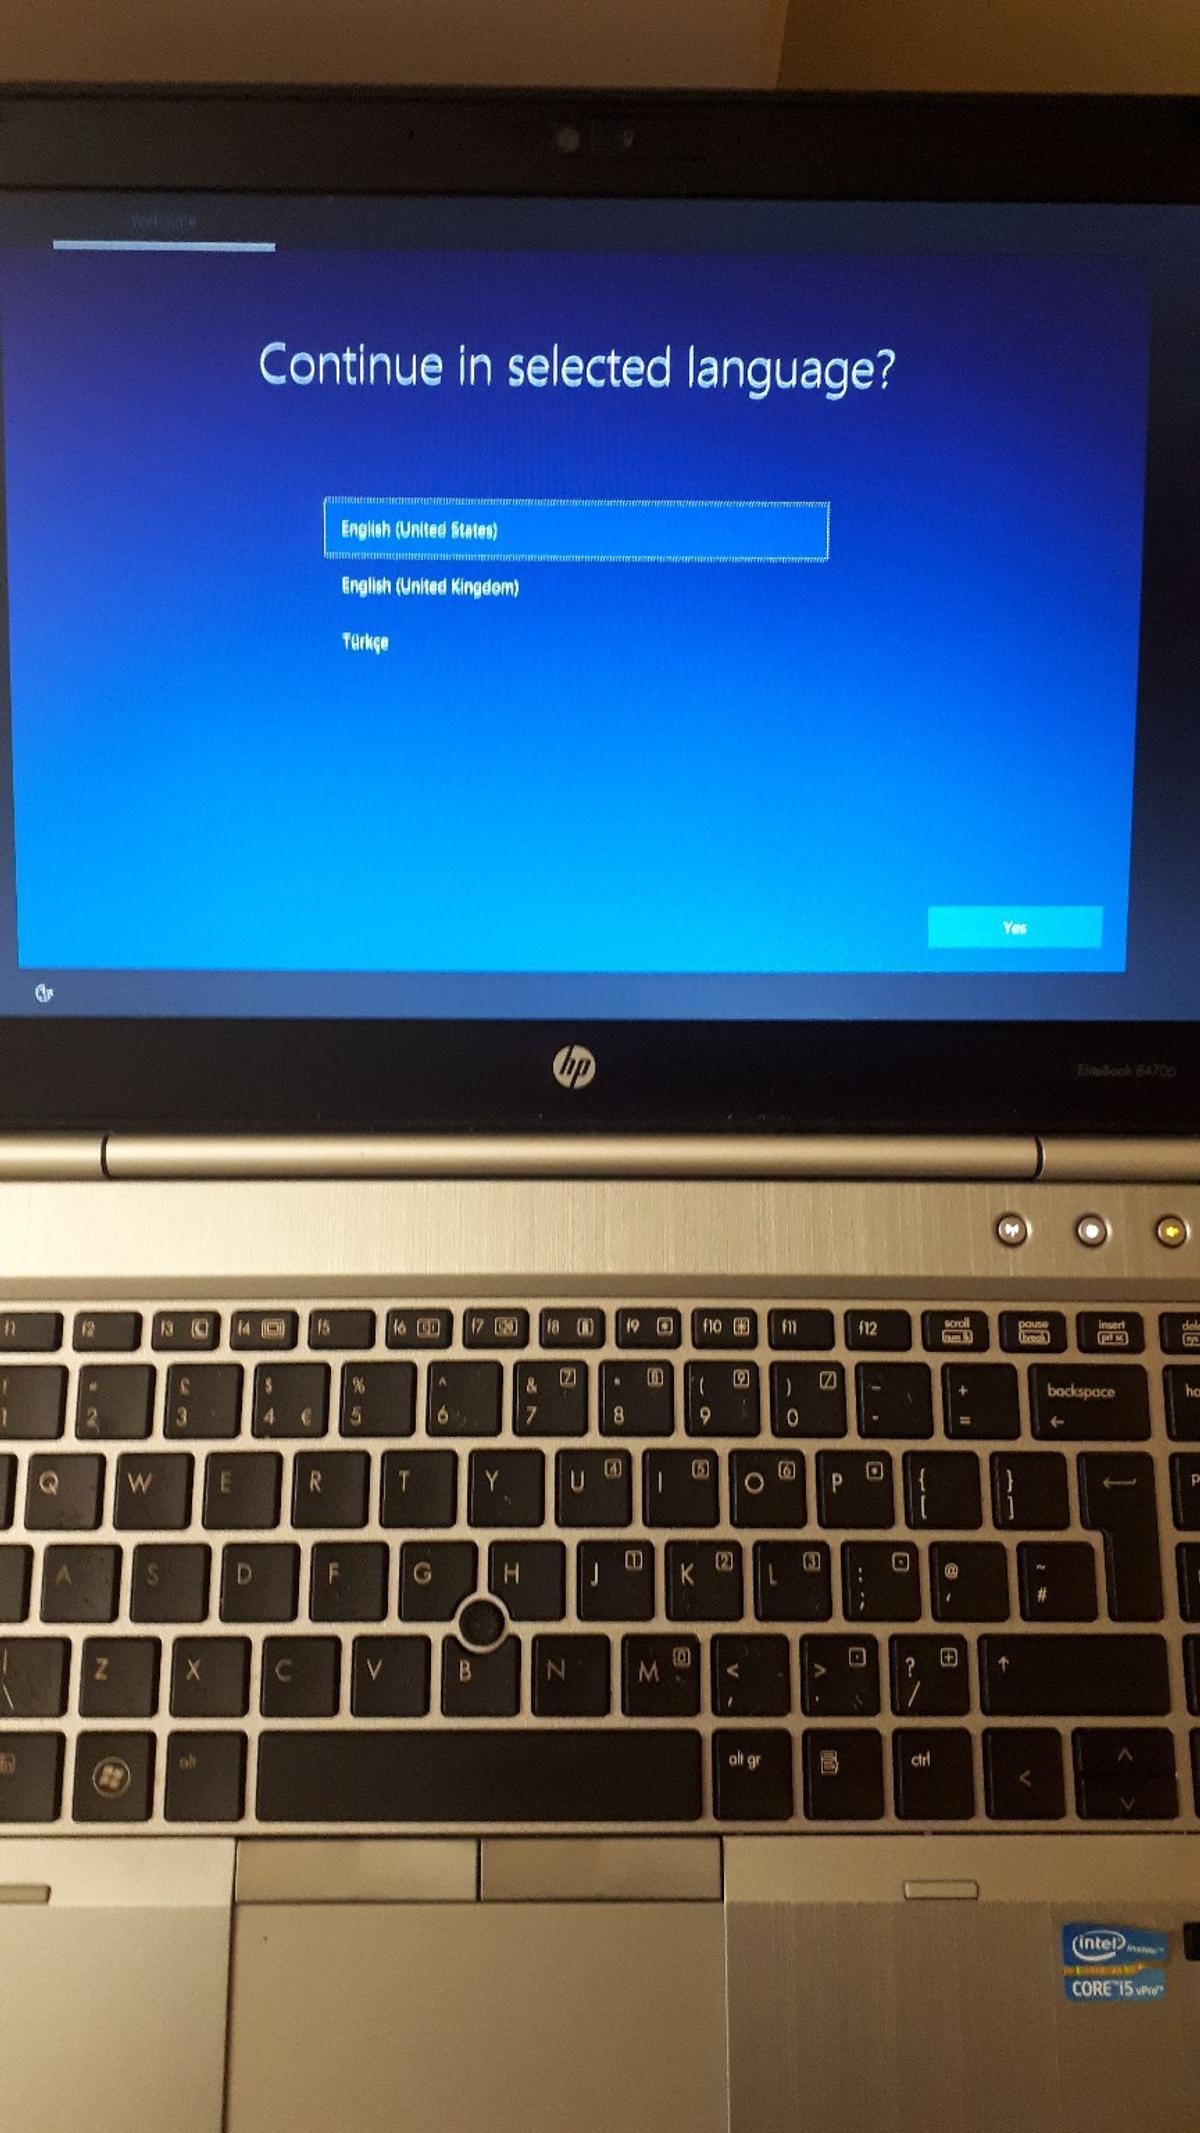 HP Elitebook 8470p (core i5 vPro 2 8 in LE1 Leicester for